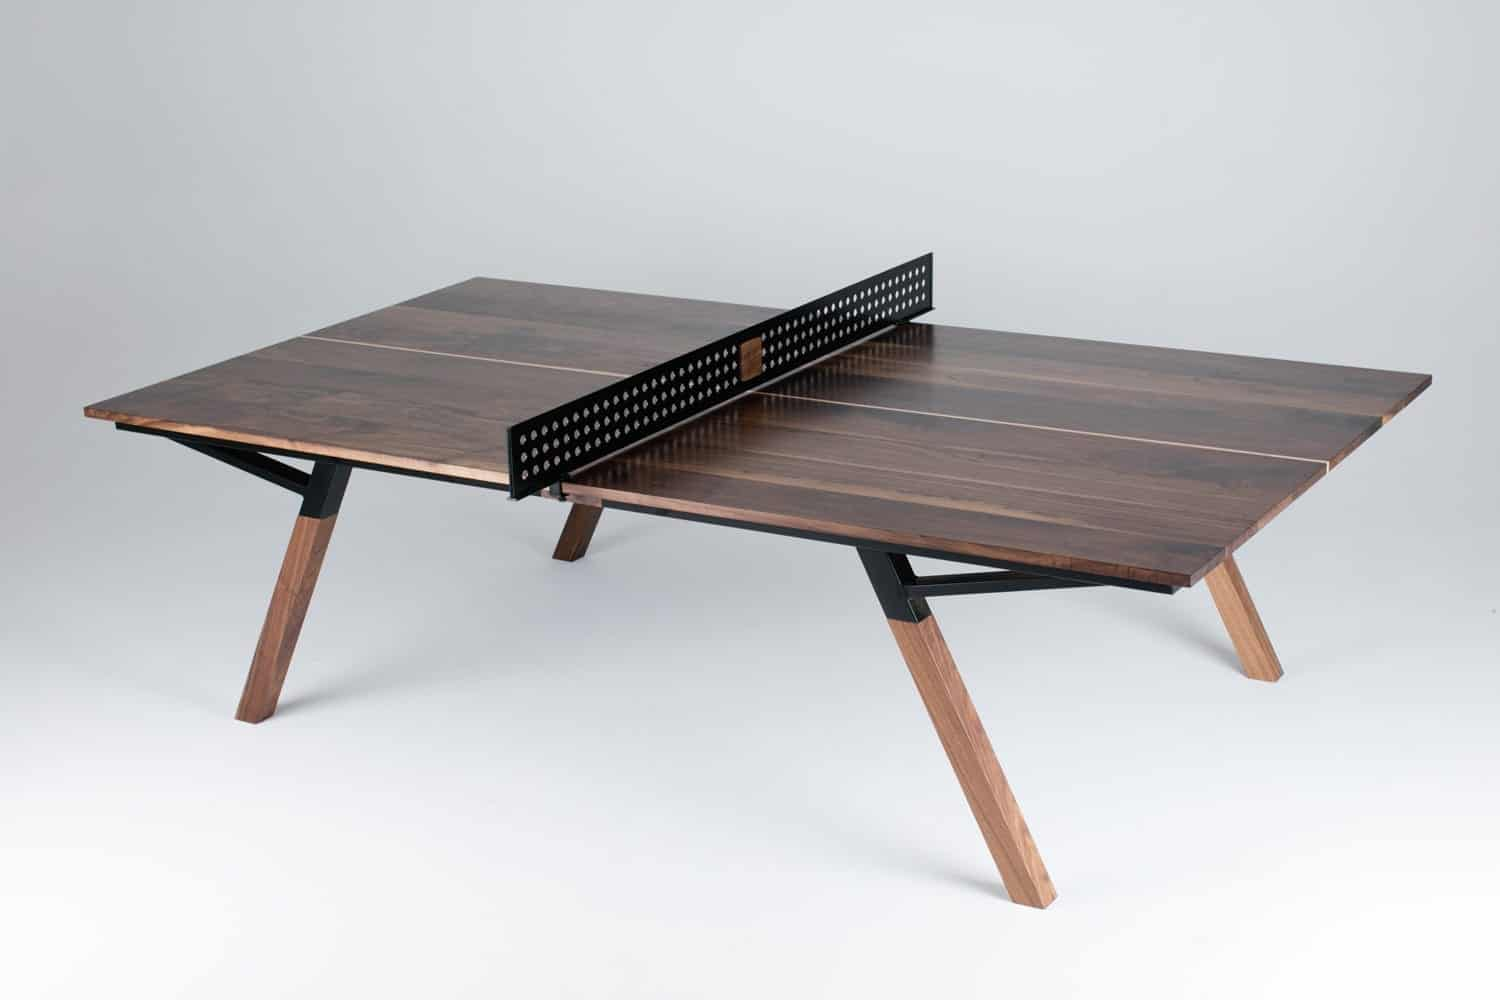 Laguna Beach Art Galleries - Wood Ping Pong Tables - Thomas Studios